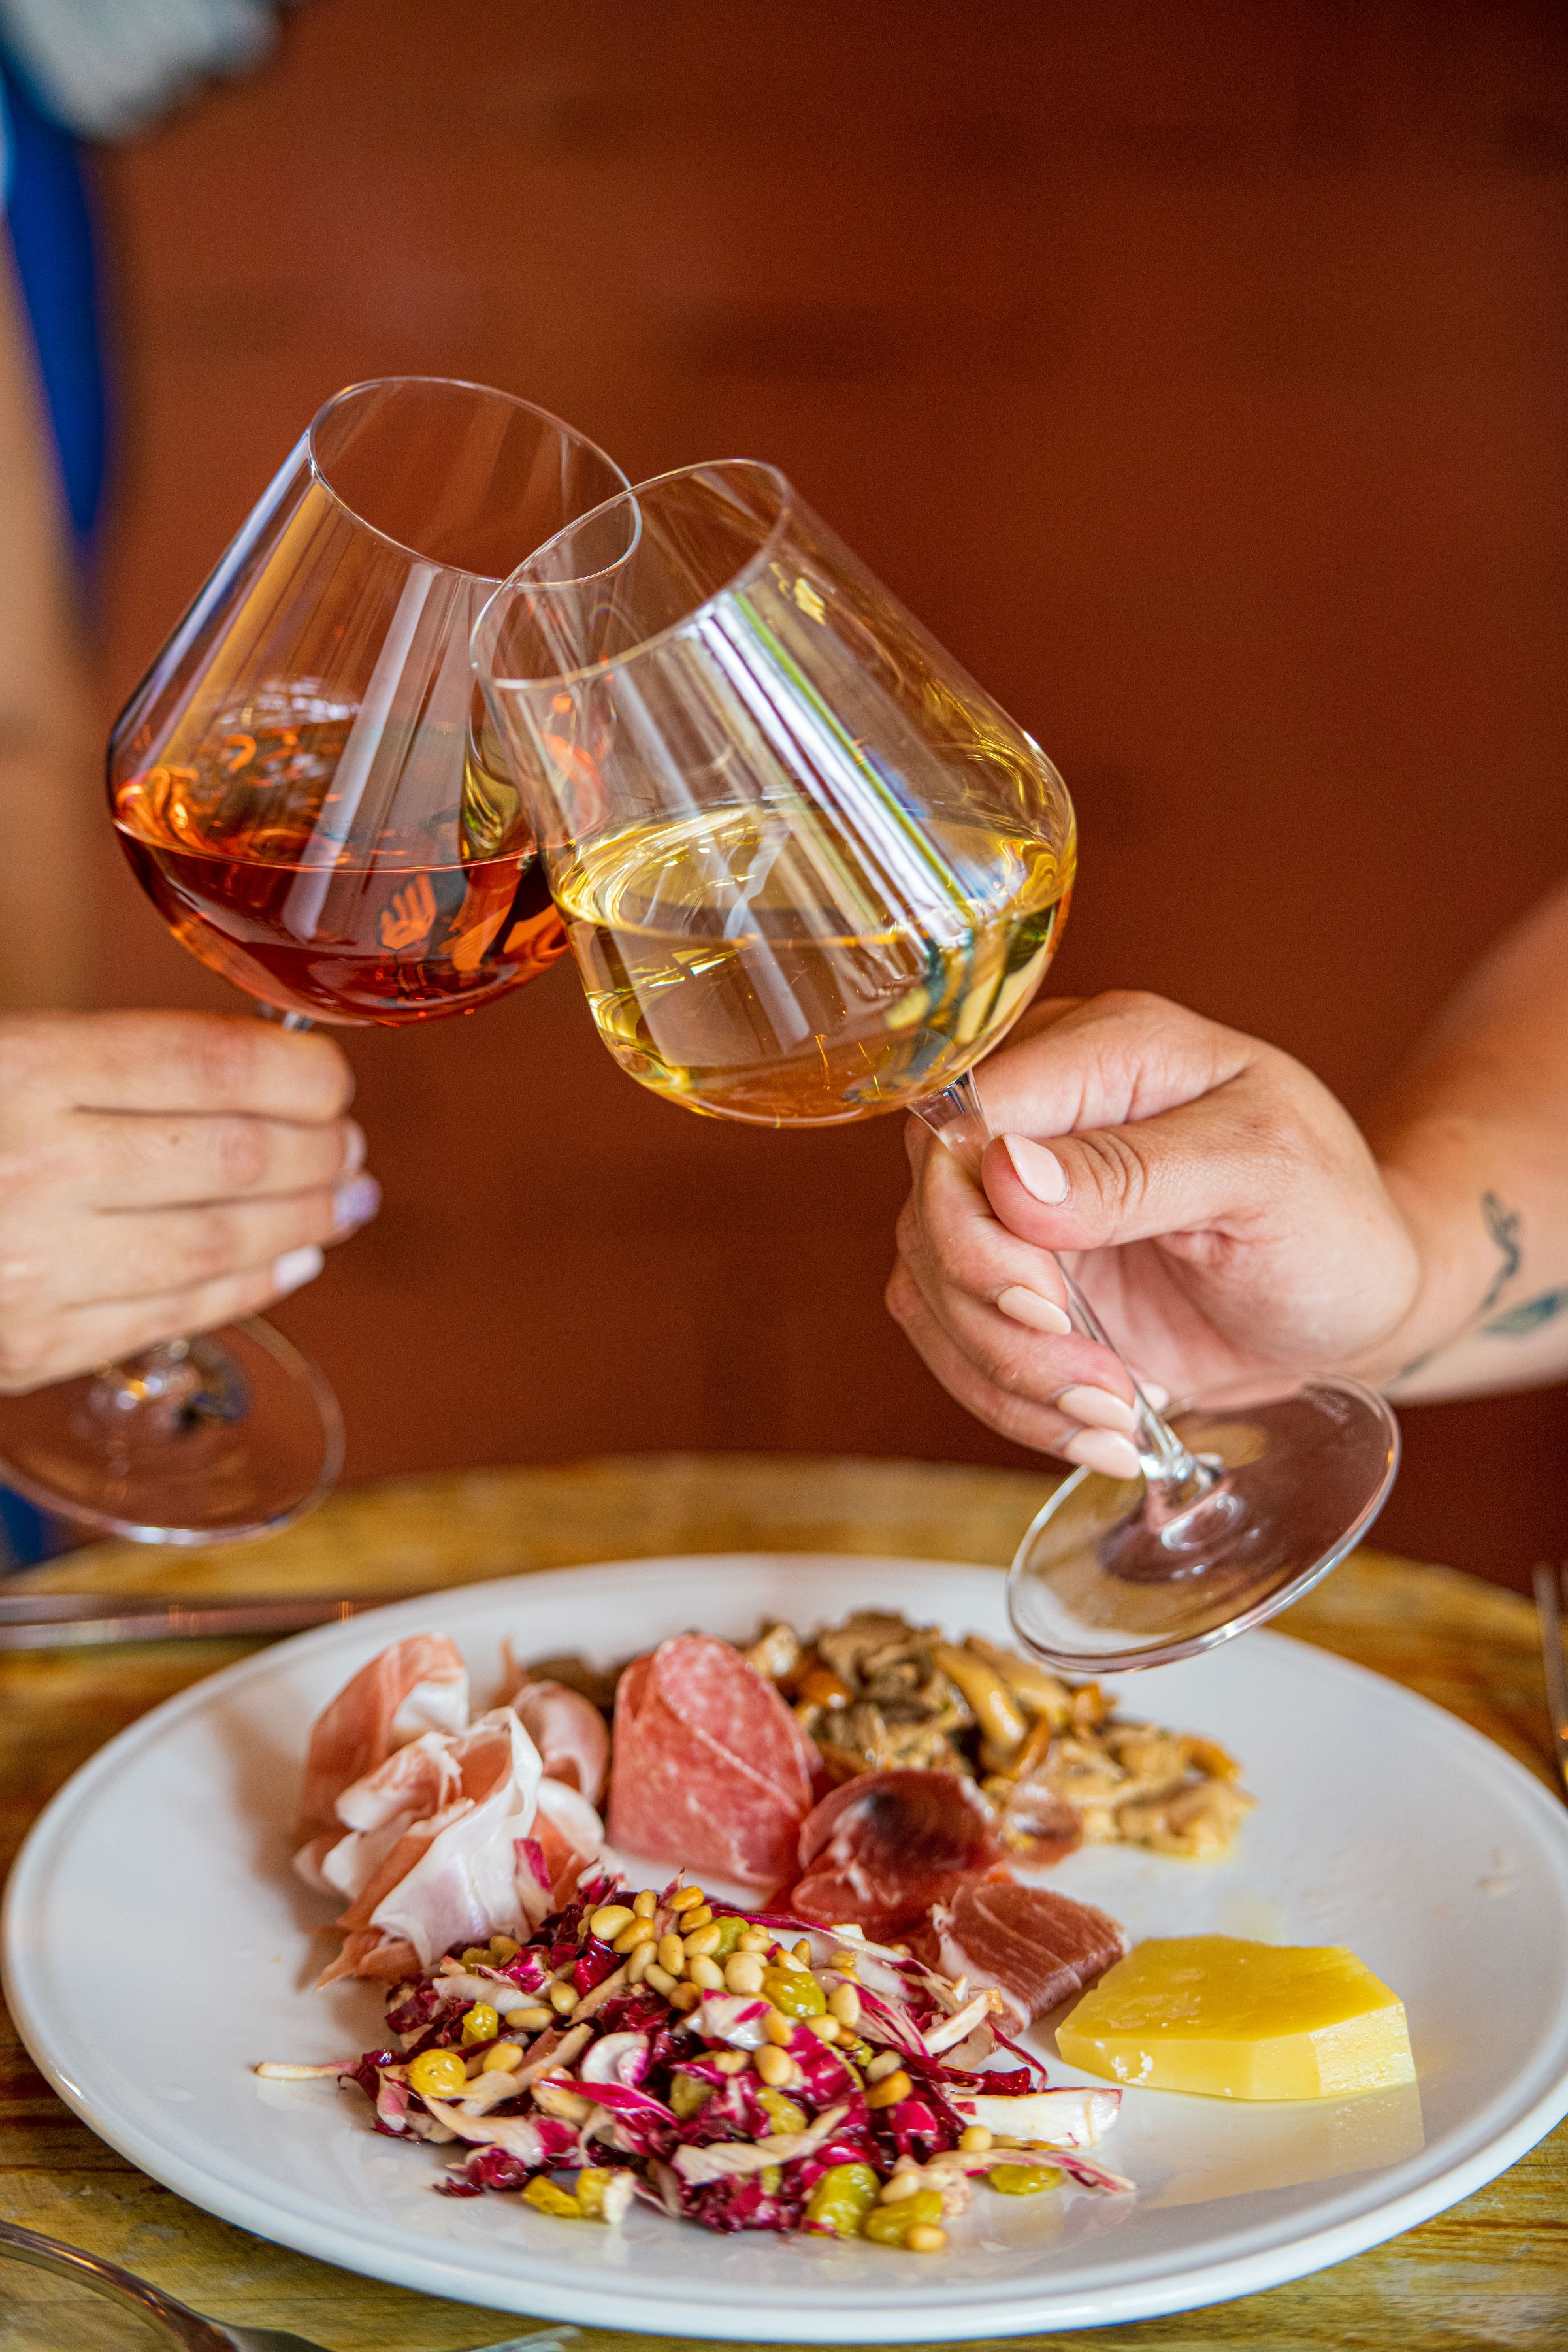 Clinking glasses of rose and white wine above a plate of charcuterie from Storico Vino in Buckhead Atlanta